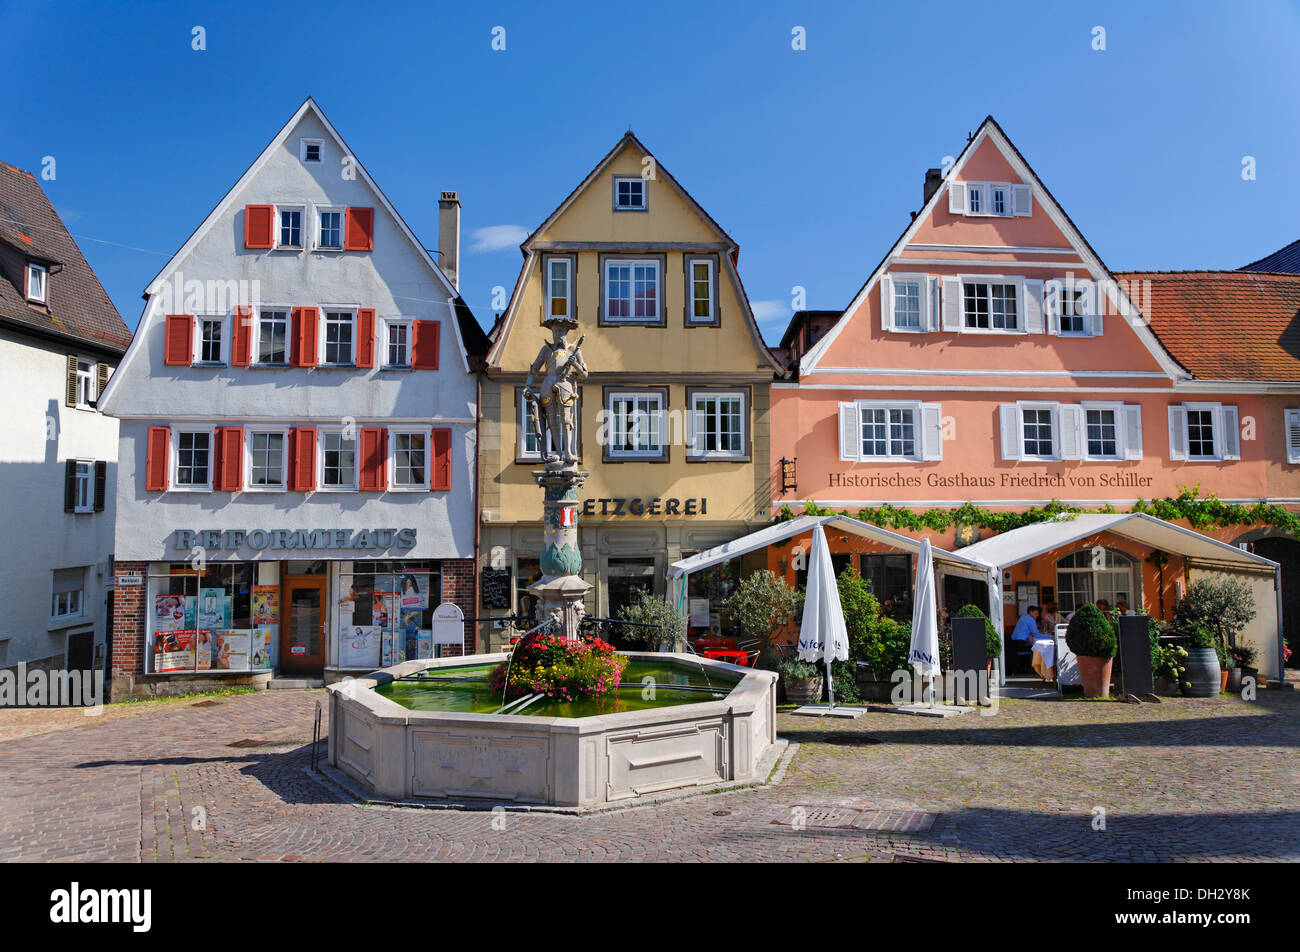 germany baden wuerttemberg bietigheim houses fountains stock photo royalty free image. Black Bedroom Furniture Sets. Home Design Ideas